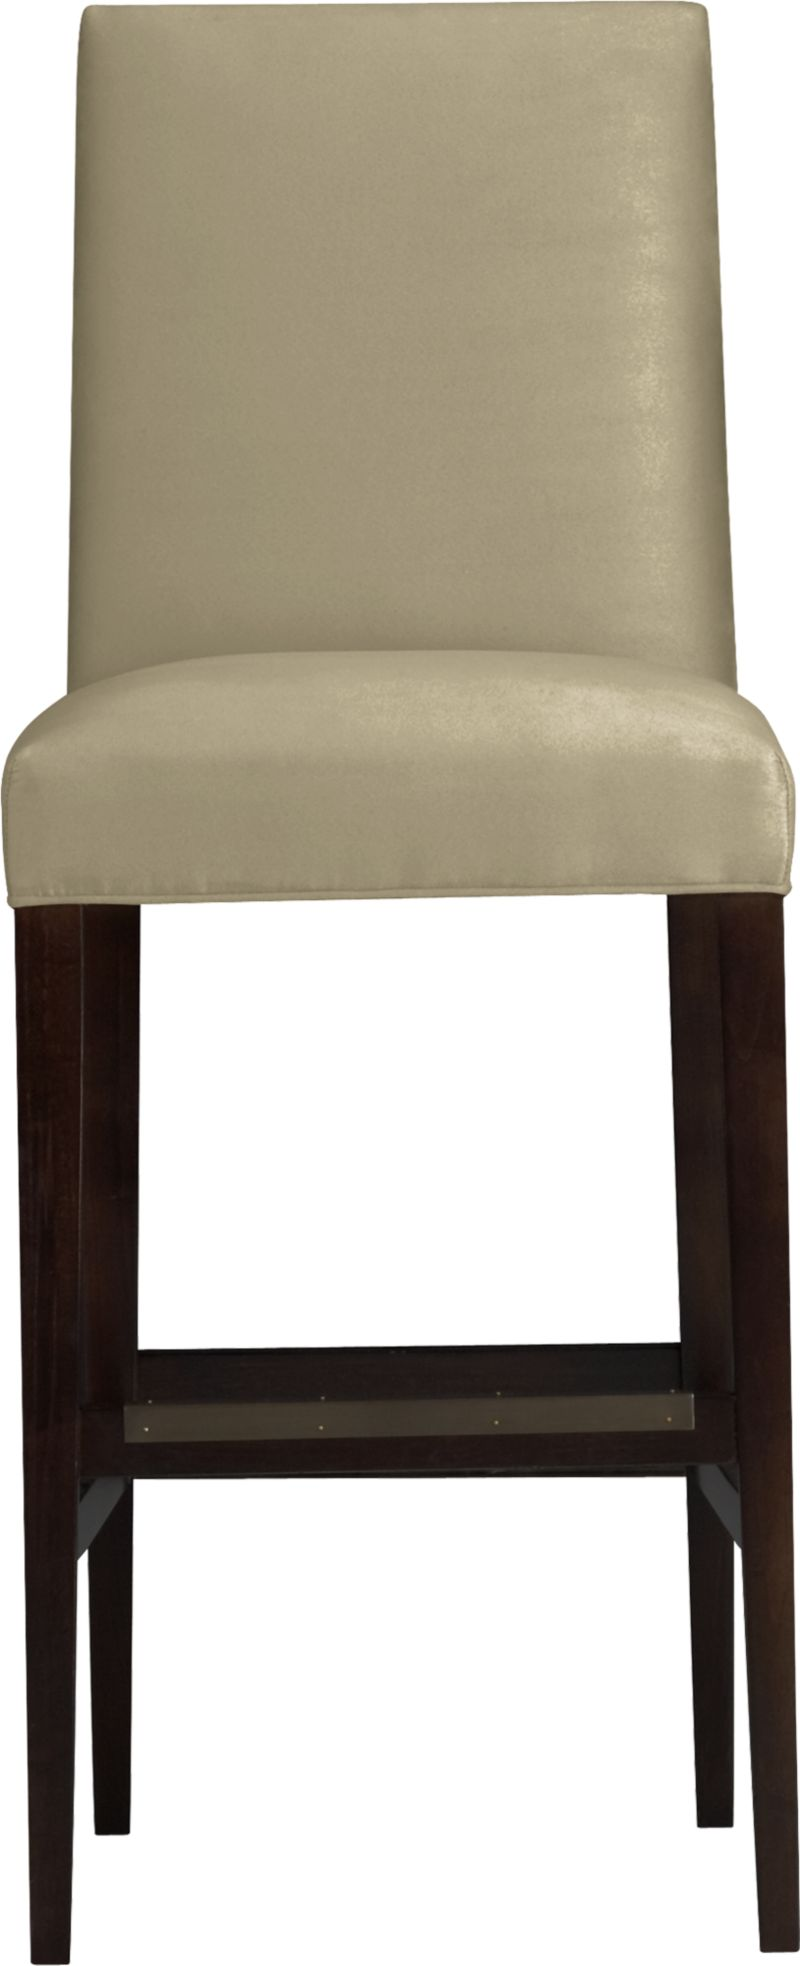 "Our Miles barstool is a fresh new classic with polished proportions and casual formality. Padded seat and gently curved back are upholstered in an easy-care textural poly blend in neutral sand. Slim hickory-colored hardwood legs taper gracefully to the floor.<br /><br />After you place your order, we will send a fabric swatch via next day air for your final approval. We will contact you to verify both your receipt and approval of the fabric swatch before finalizing your order.<br /><br /><NEWTAG/><ul><li>Eco-friendly construction</li><li>Certified sustainable solid engineered hardwood frame</li><li>Soy- or plant-based polyfiber cushions</li><li>Solid maple legs with a hickory finish</li><li>Poly-cotton blend fabric</li><li>30""H seat sized for bars</li><li>Made in North Carolina, USA of domestic and imported materials</li></ul>"